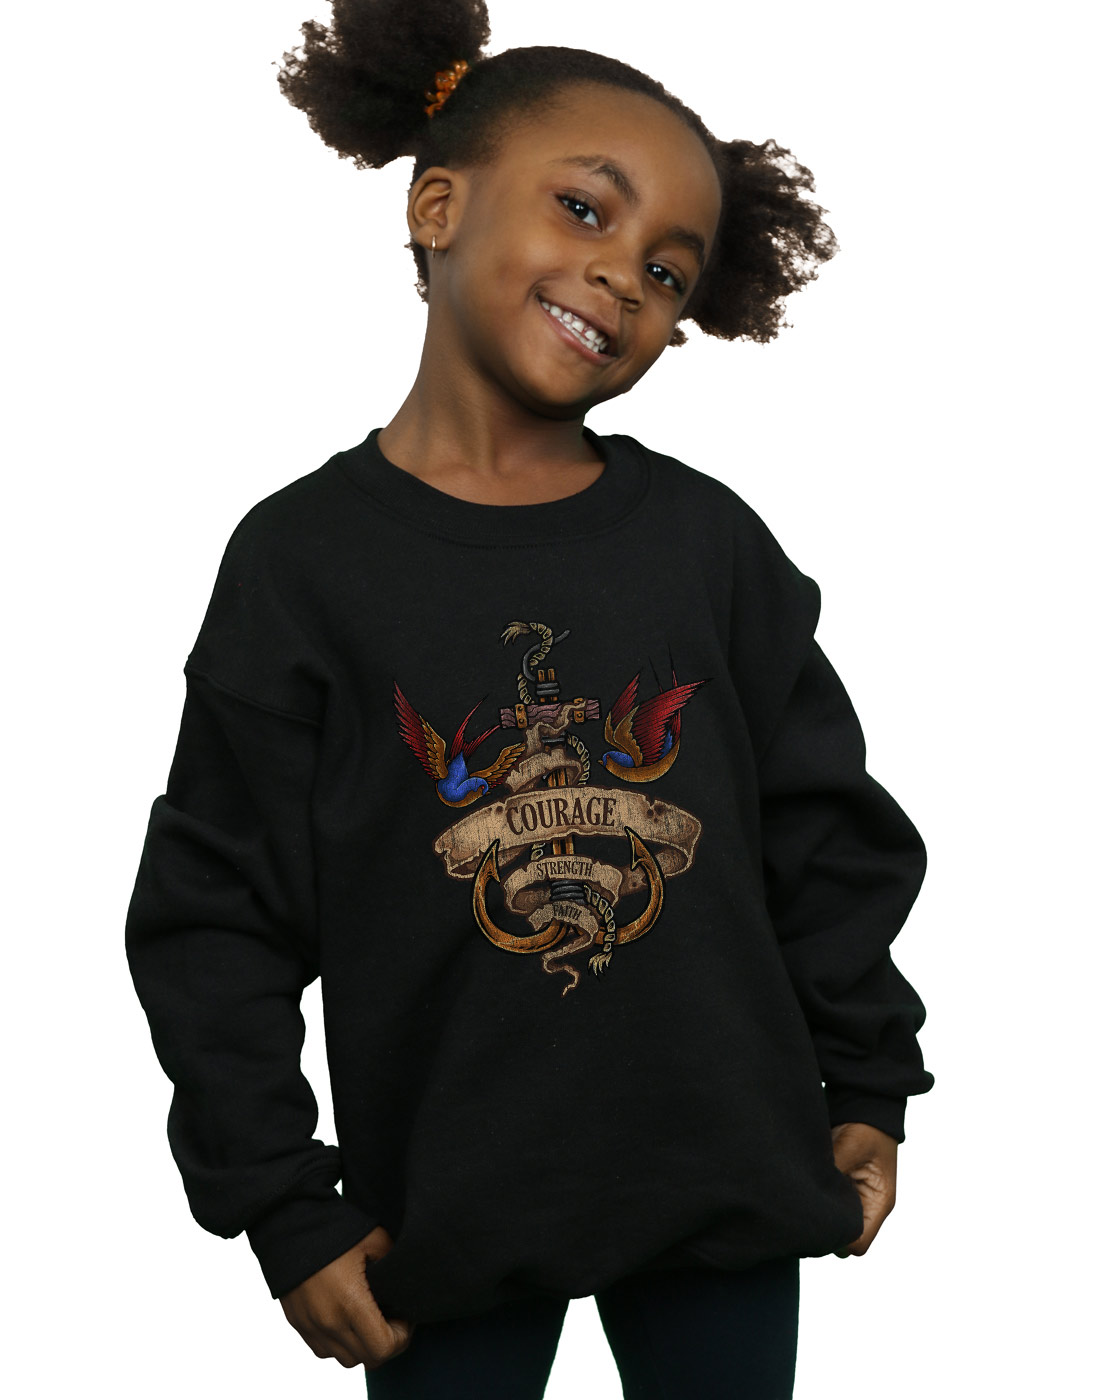 Absolute Cult Drewbacca Girls Keep It Old School Sweatshirt